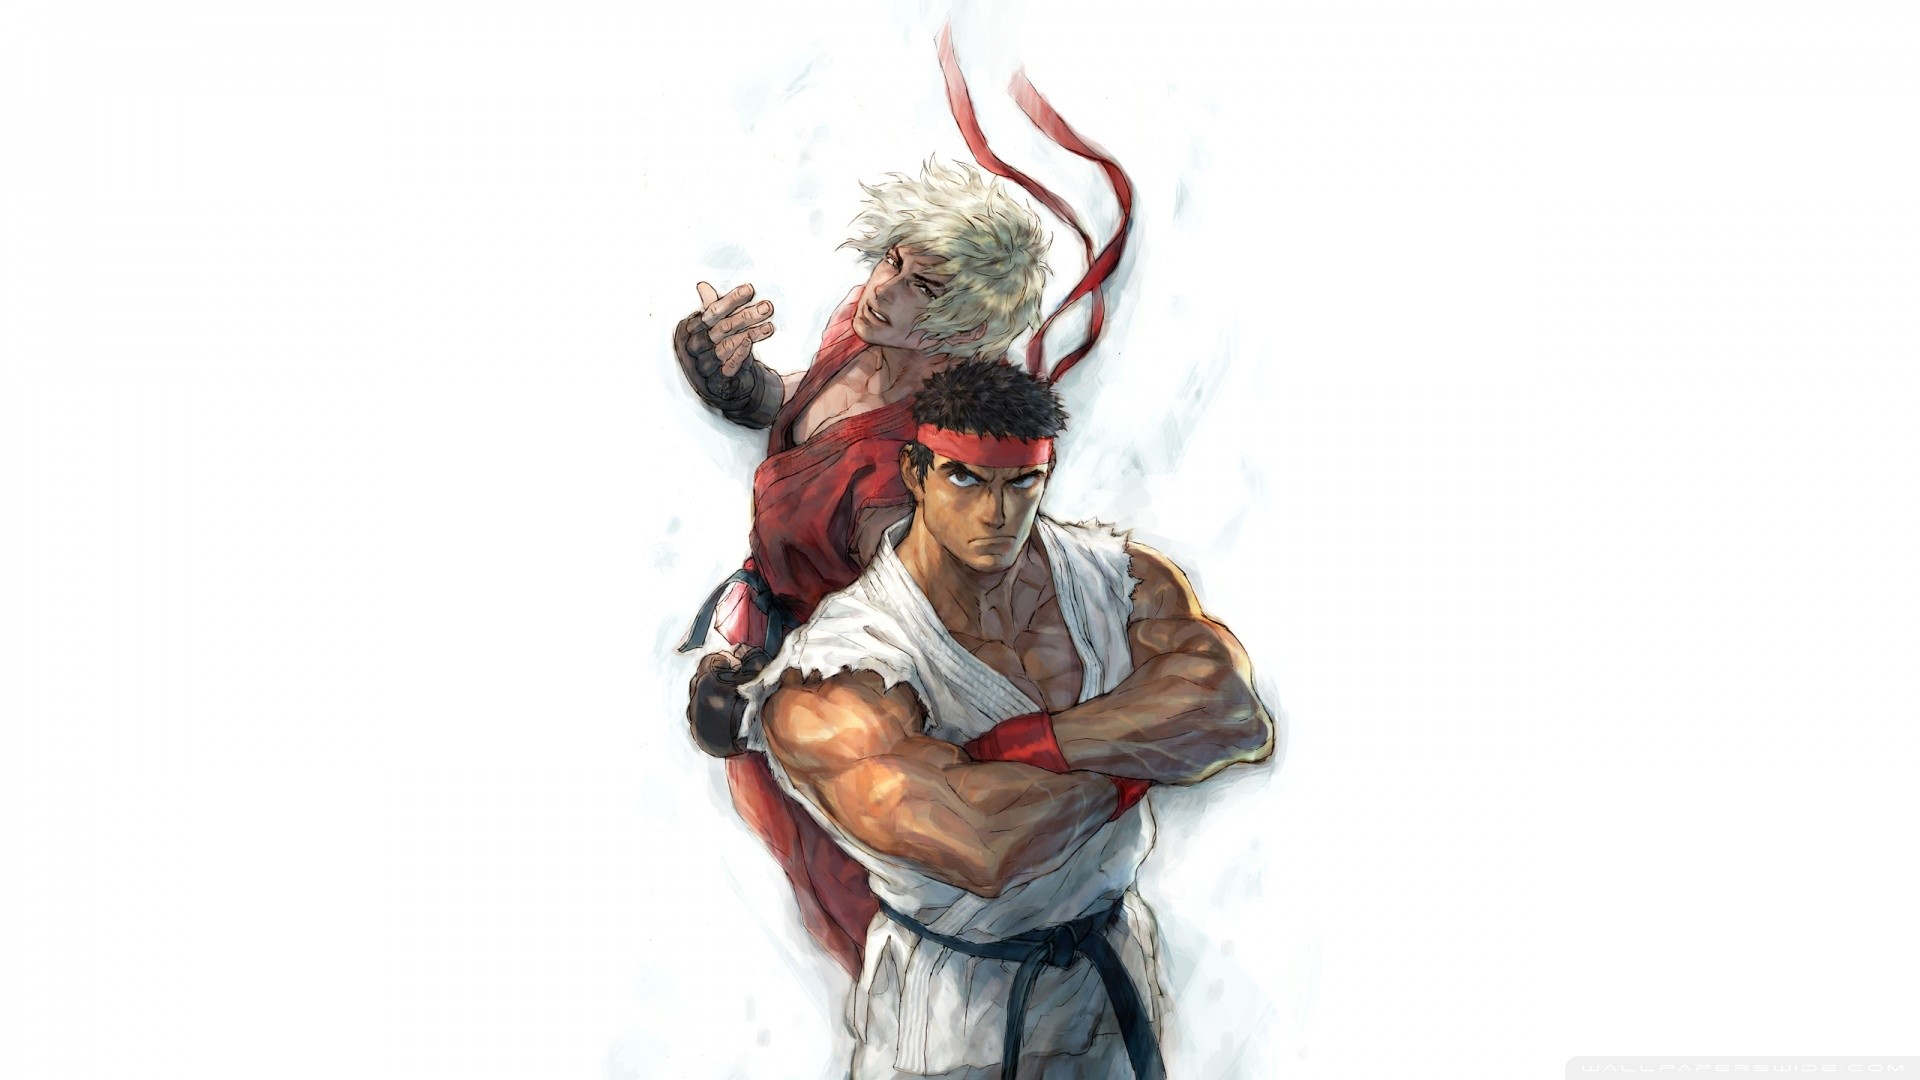 Res: 1920x1080, Evil Ryu Street Fighter Wallpaper Pictures